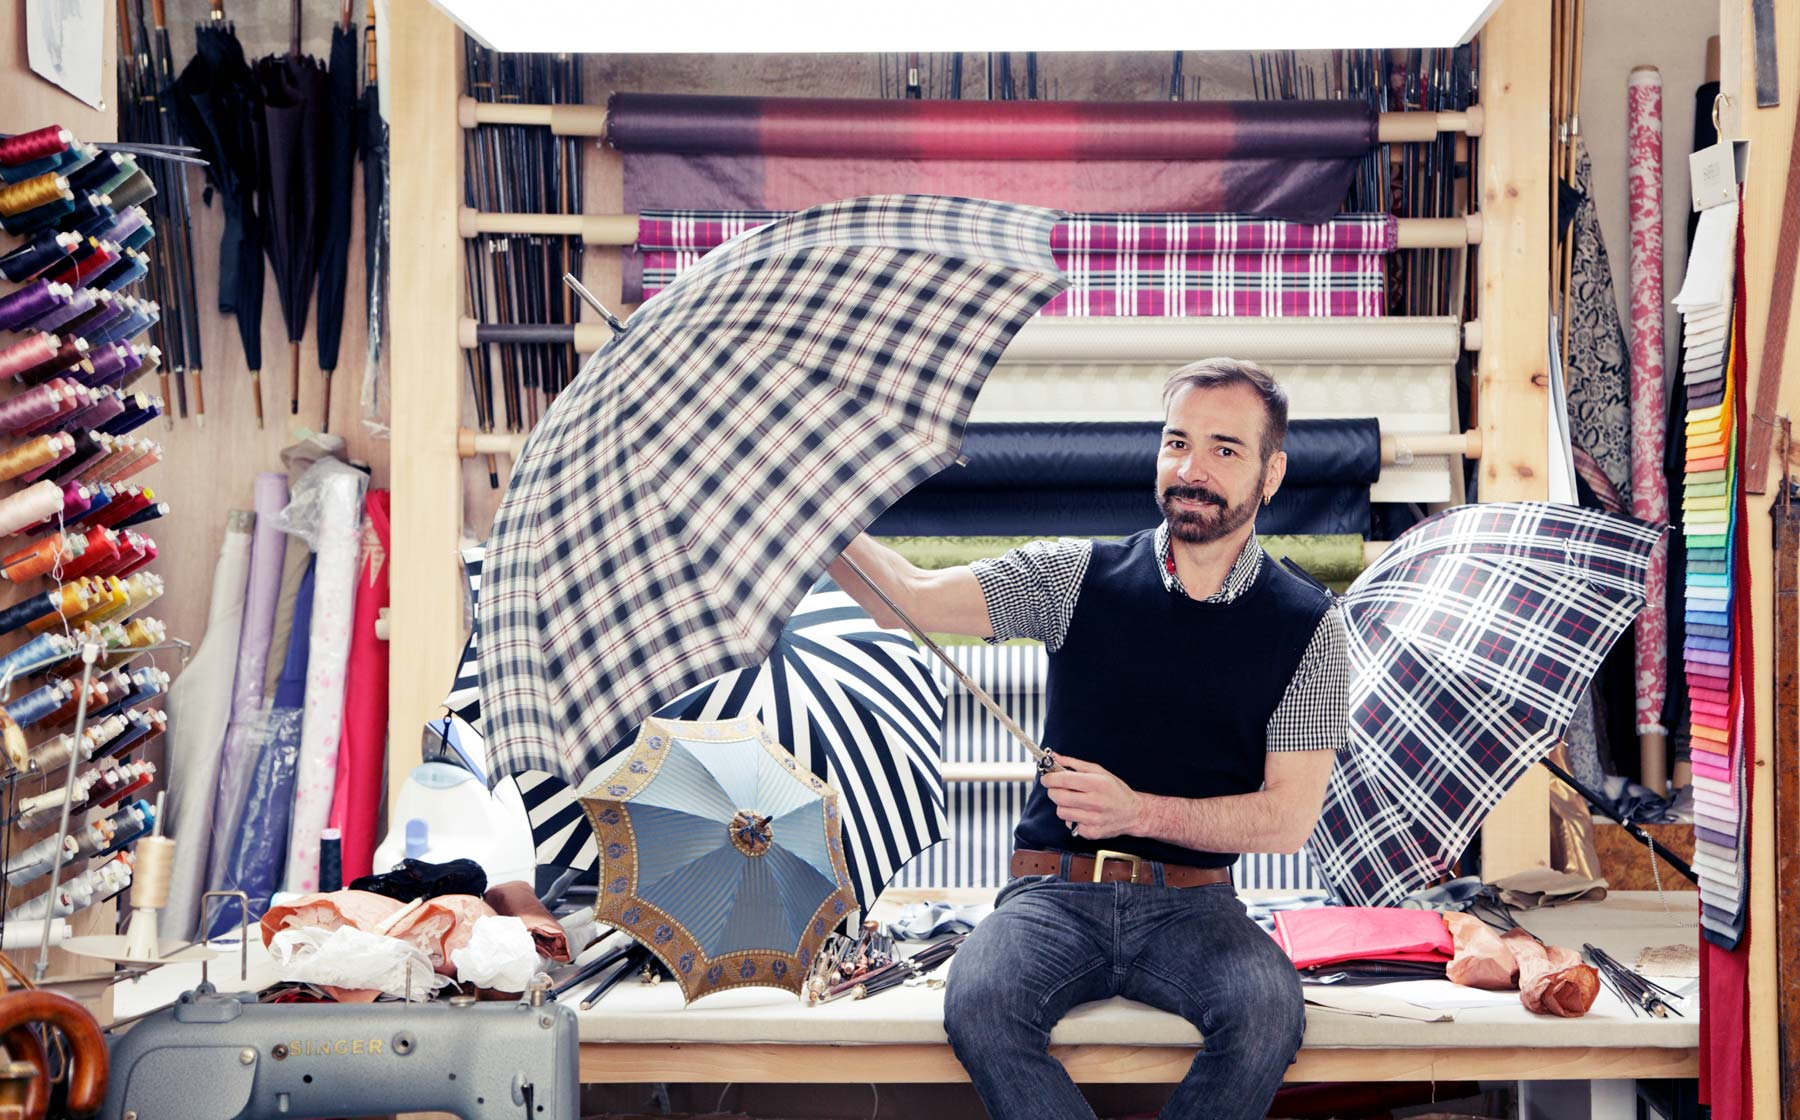 Bild/Picture Heurtault – The Passionate Umbrella-Maker